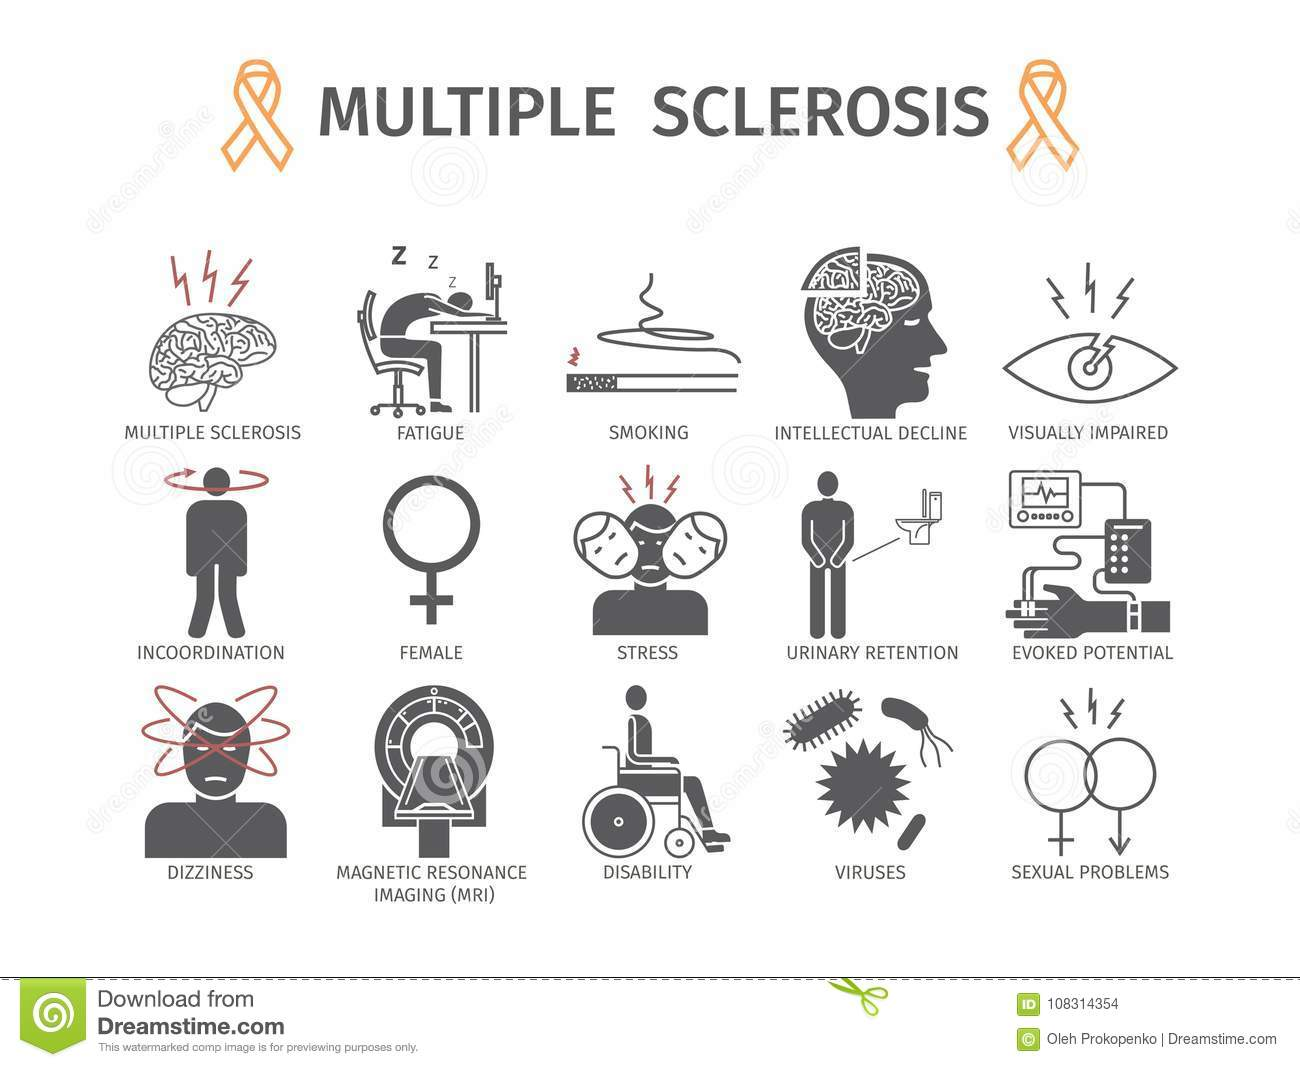 multiple sclerosis anatomical vector illustration diagram